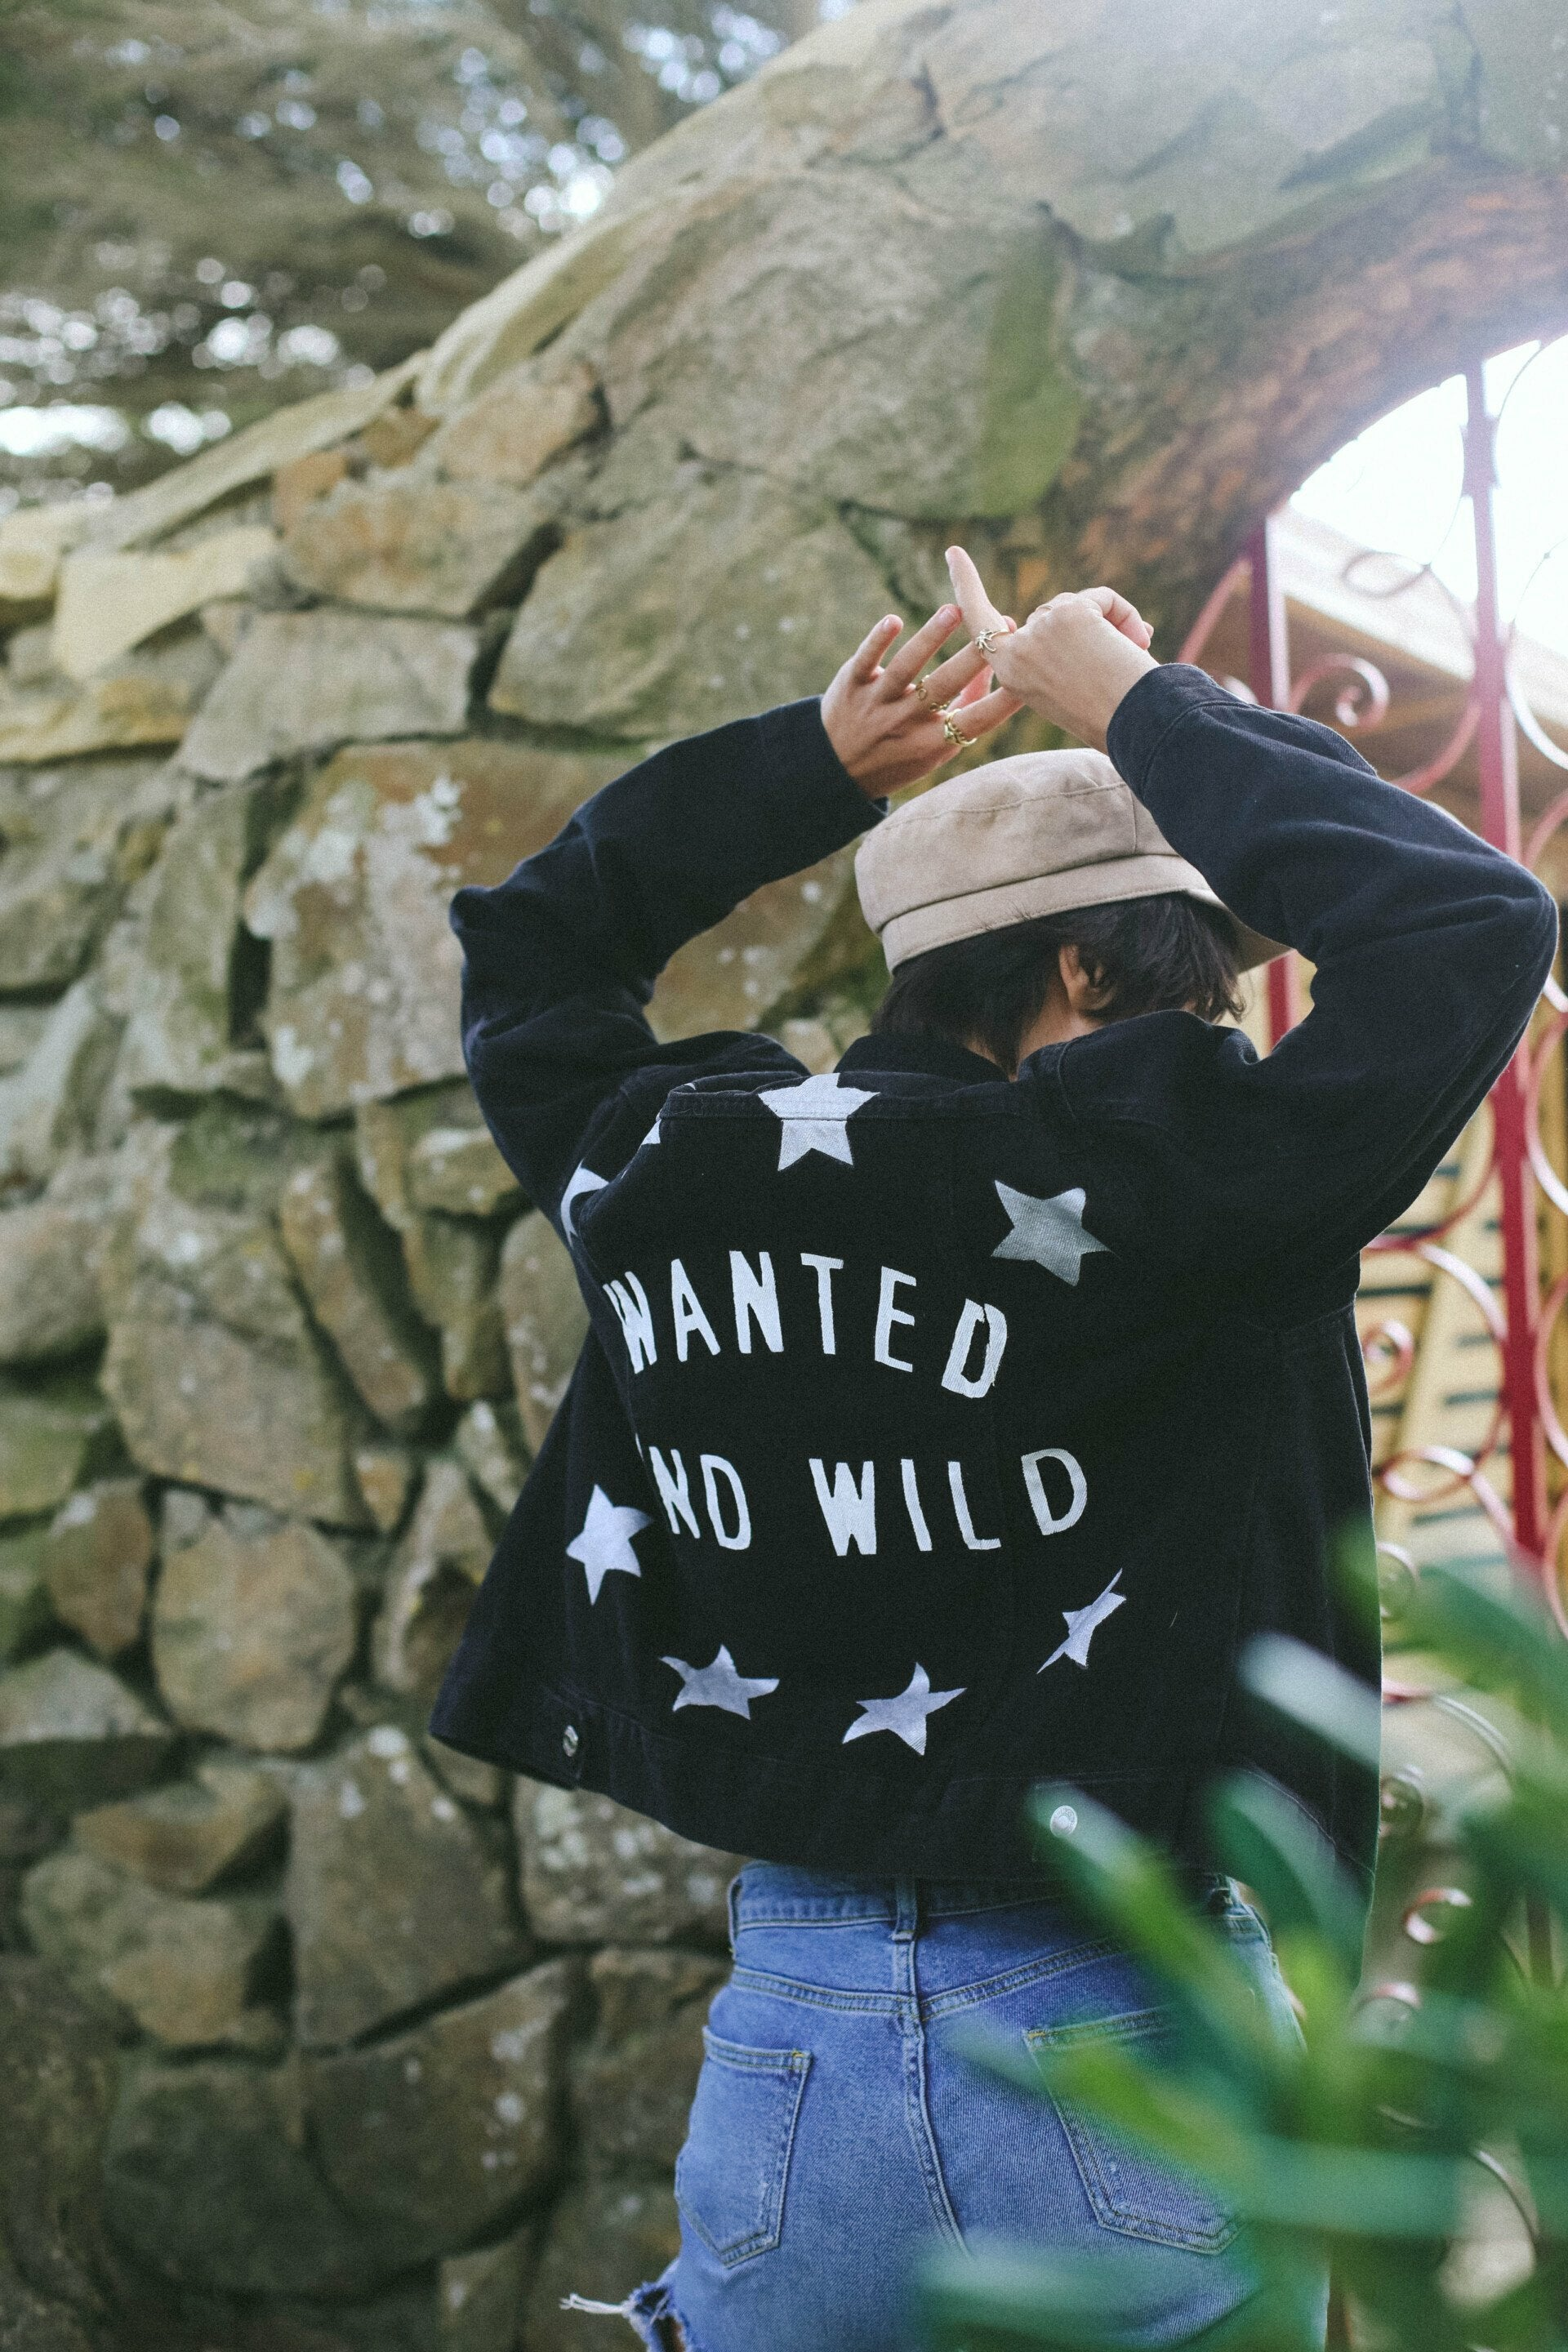 Wanted and Wild